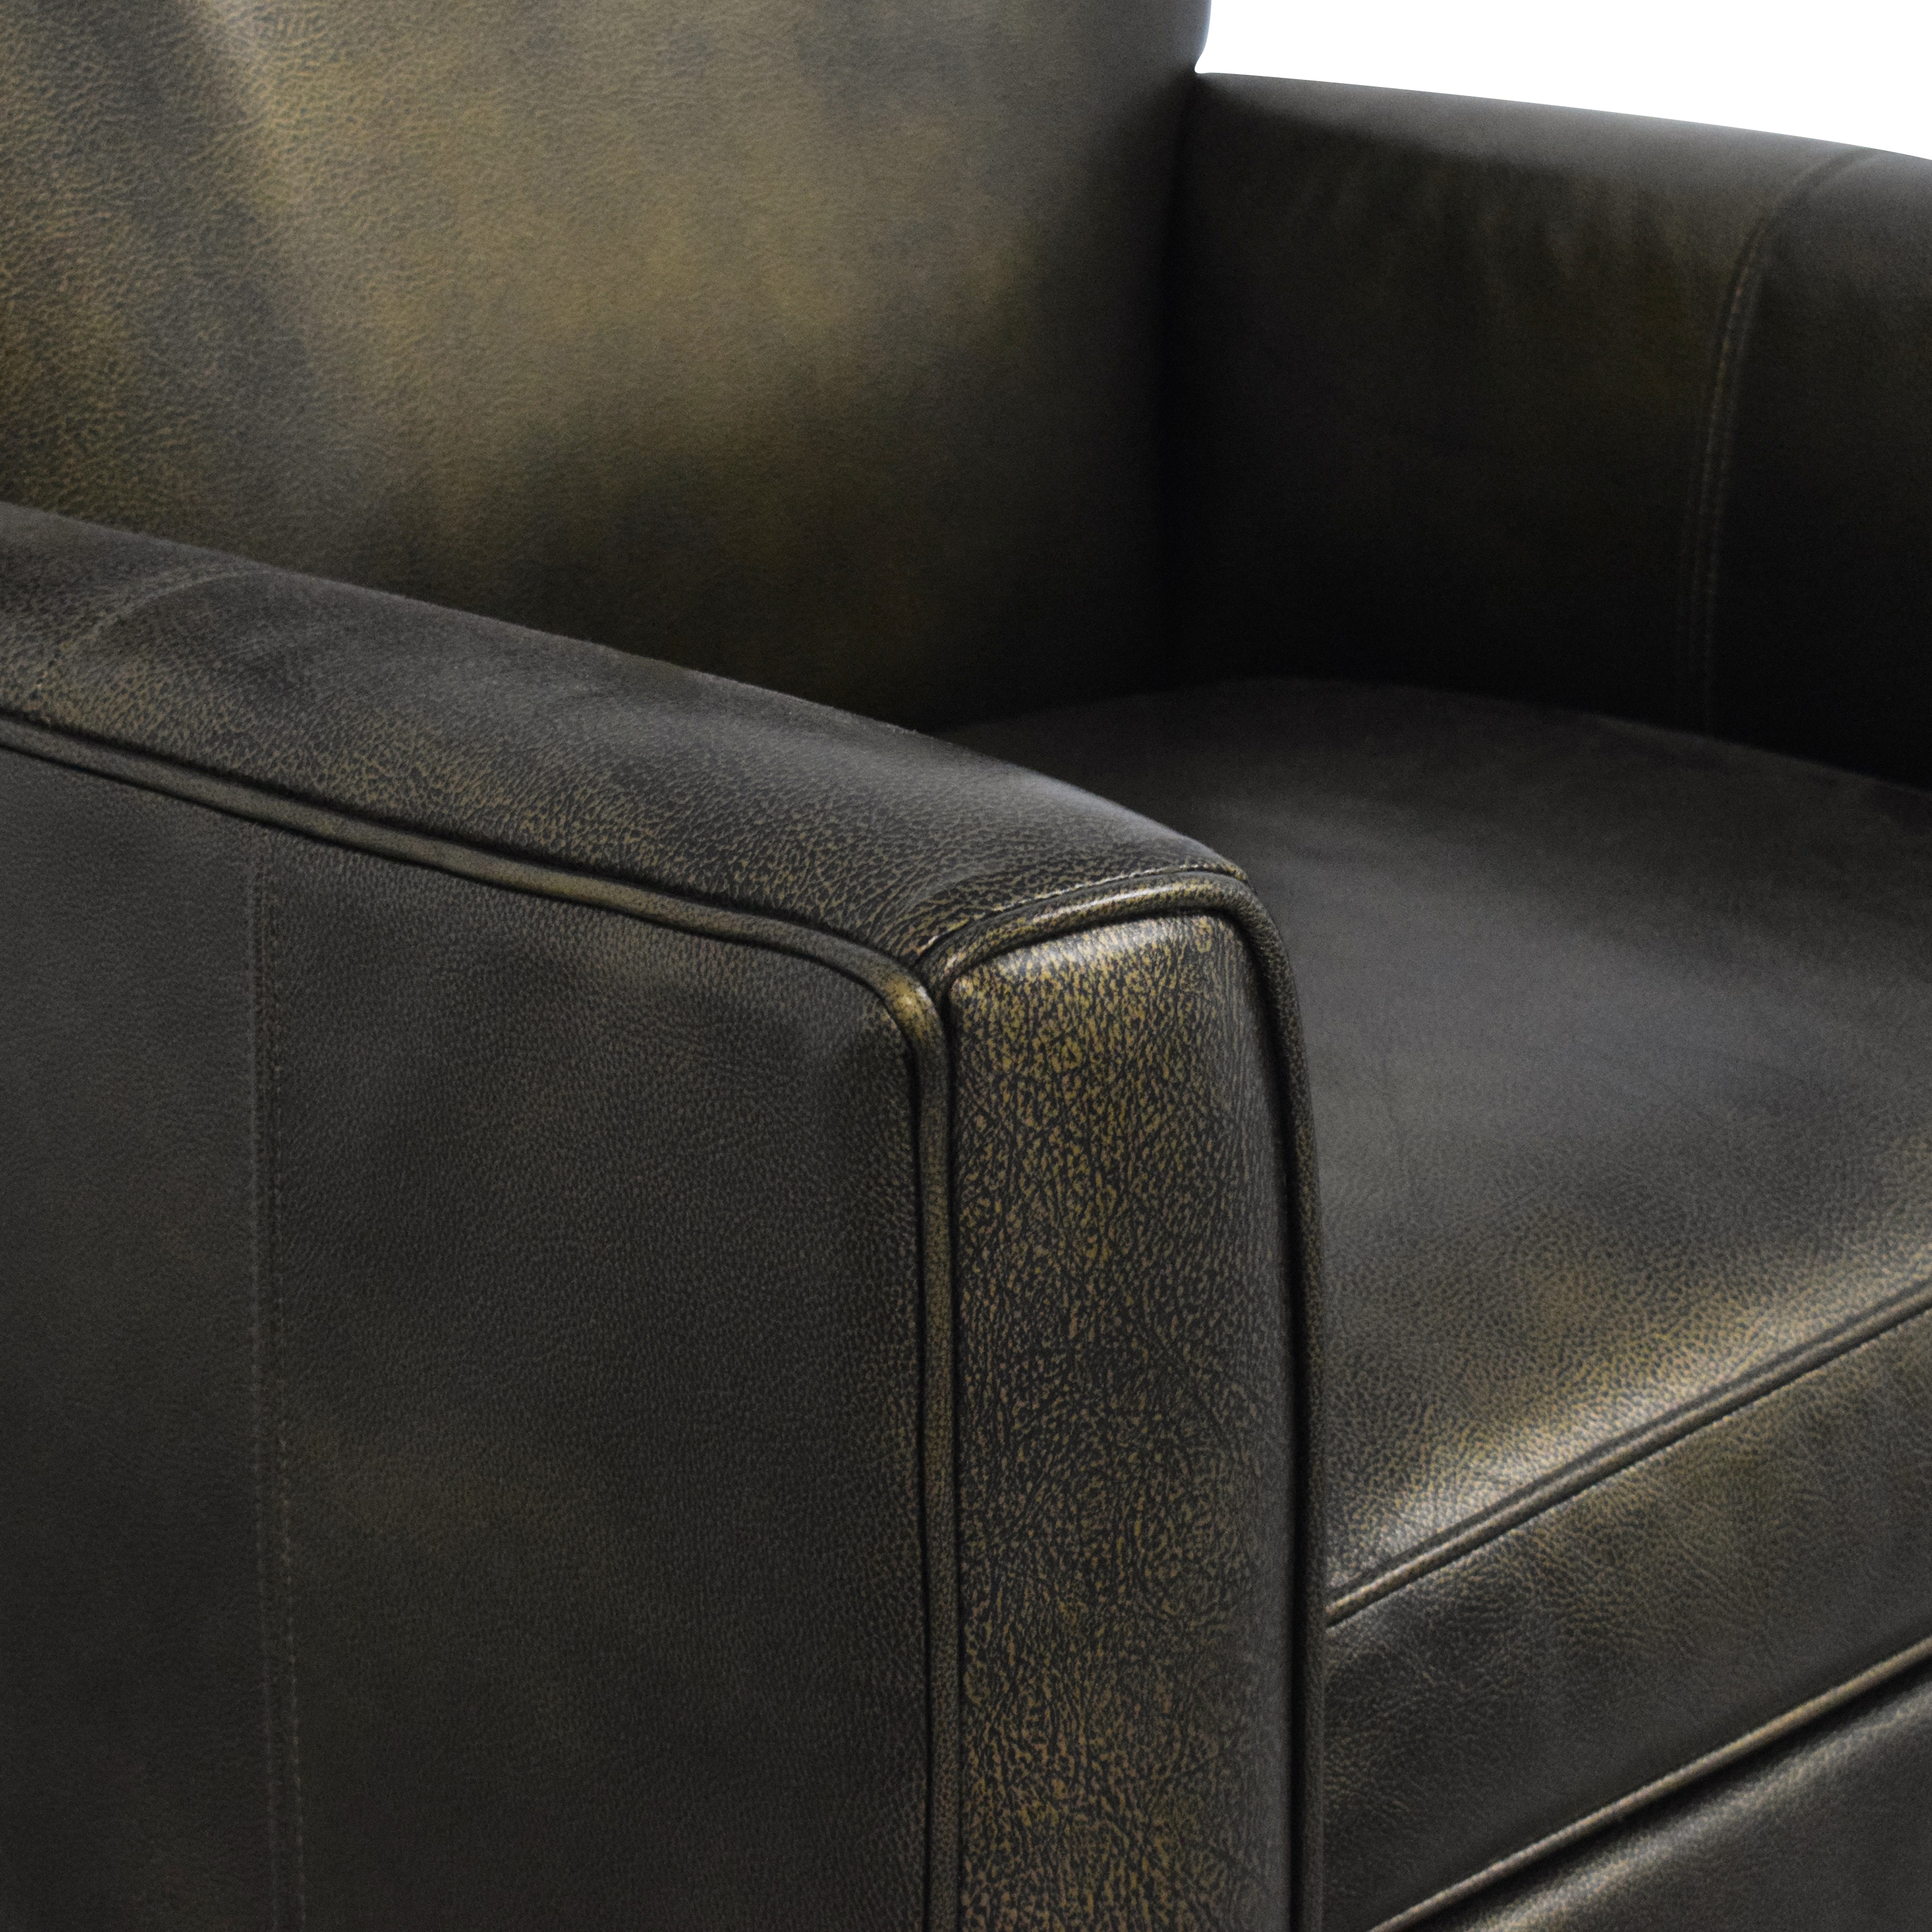 Ethan Allen Ethan Allen Tufted Wingback Chair ct